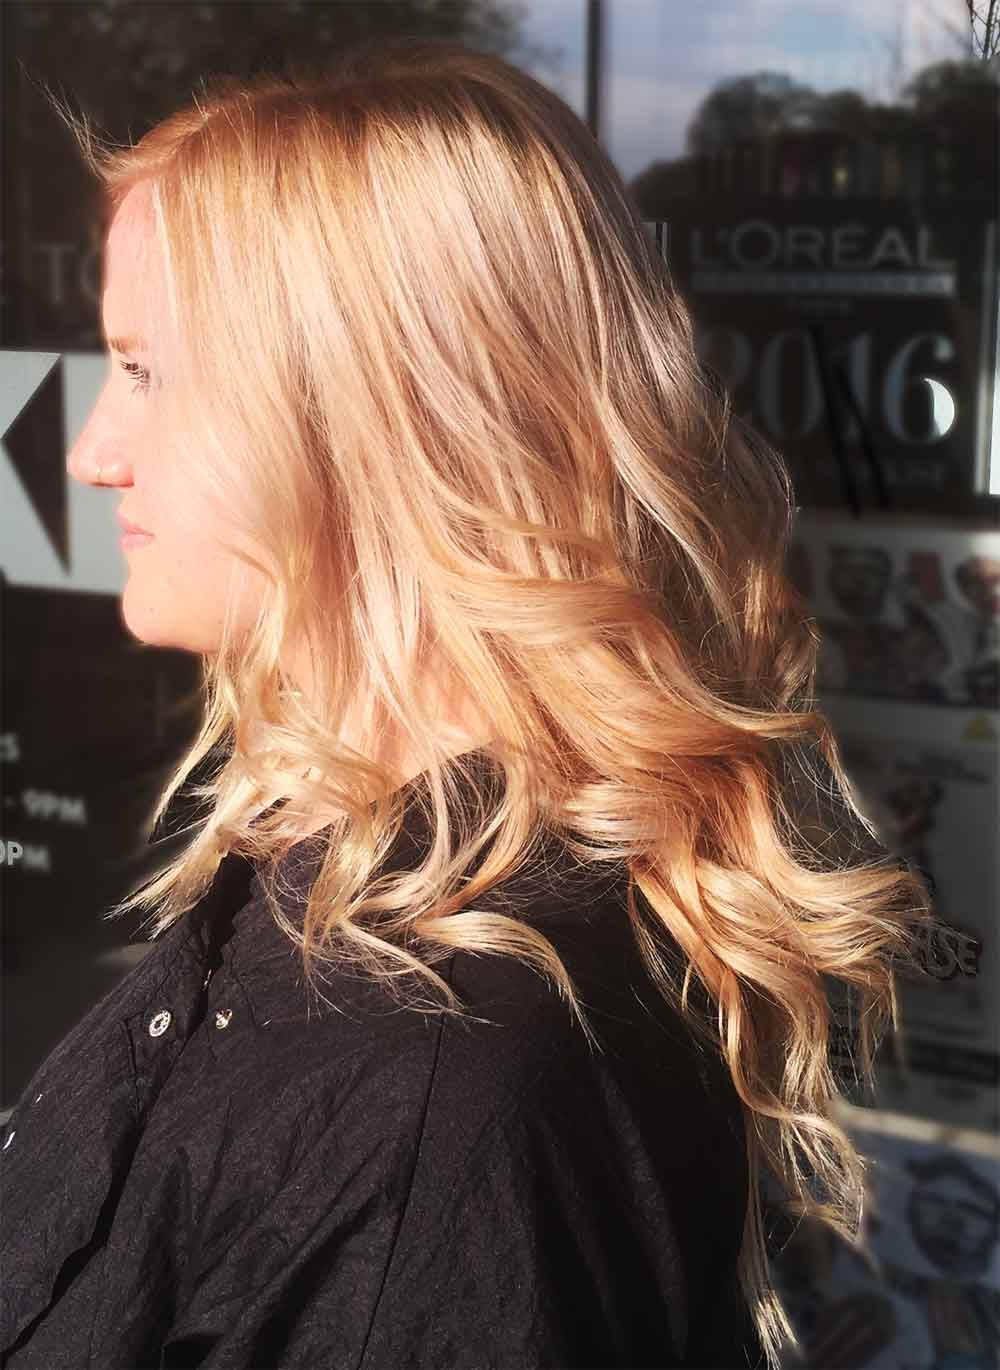 Are you considering layering your hair?